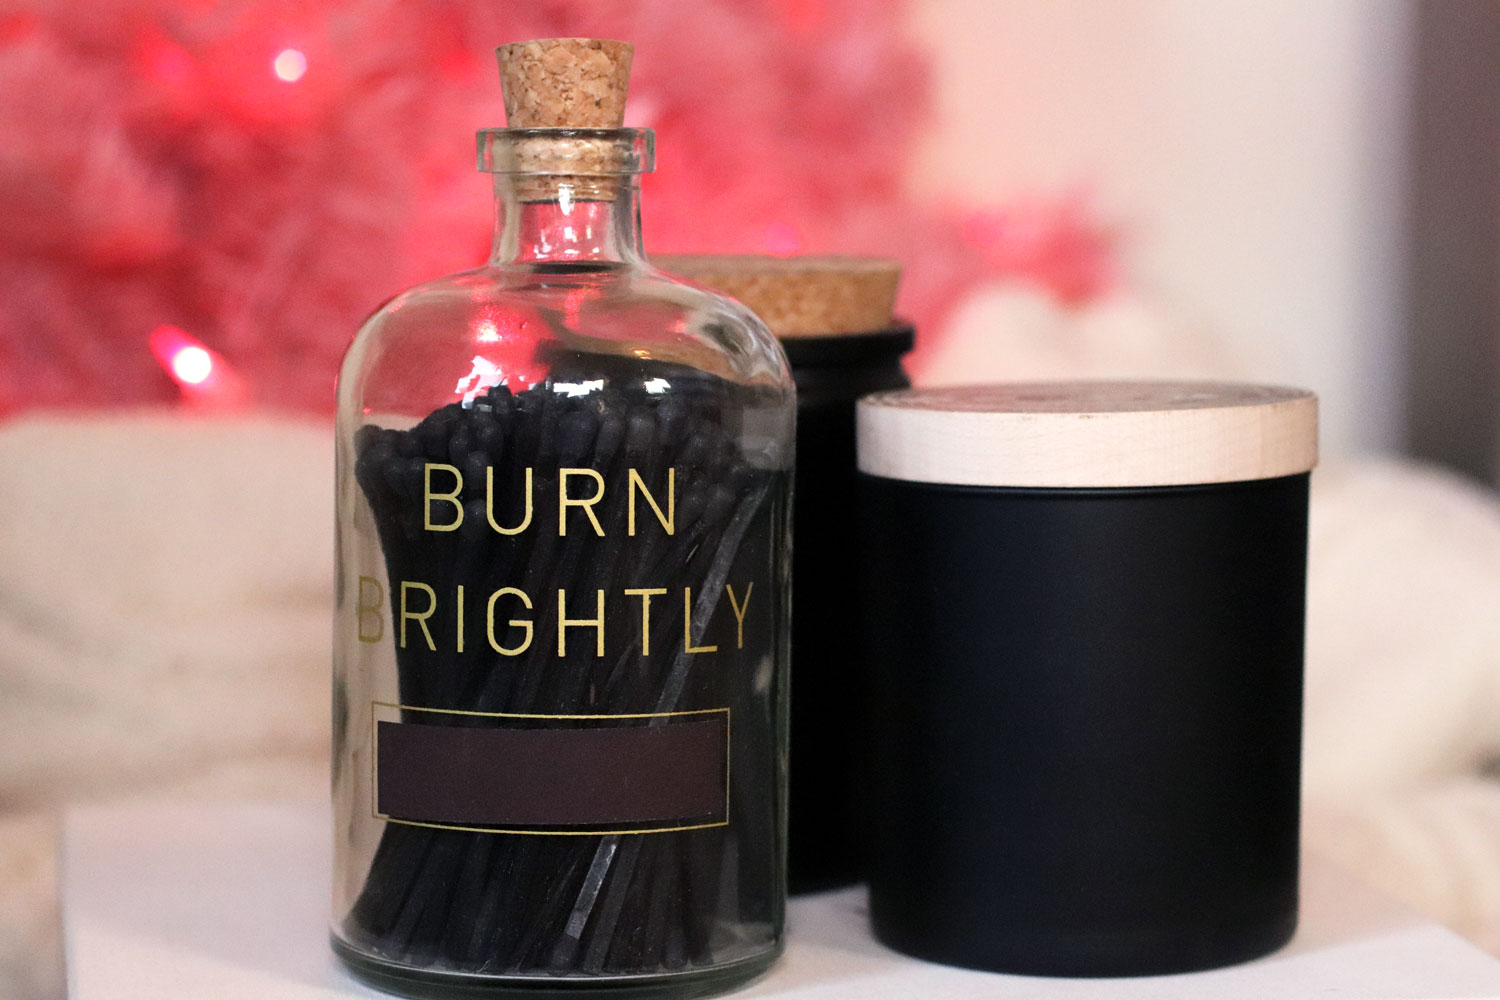 Woman Owned Holiday Gift Guide 2019 - Skeem Design Burn Brightly Matches and Candles